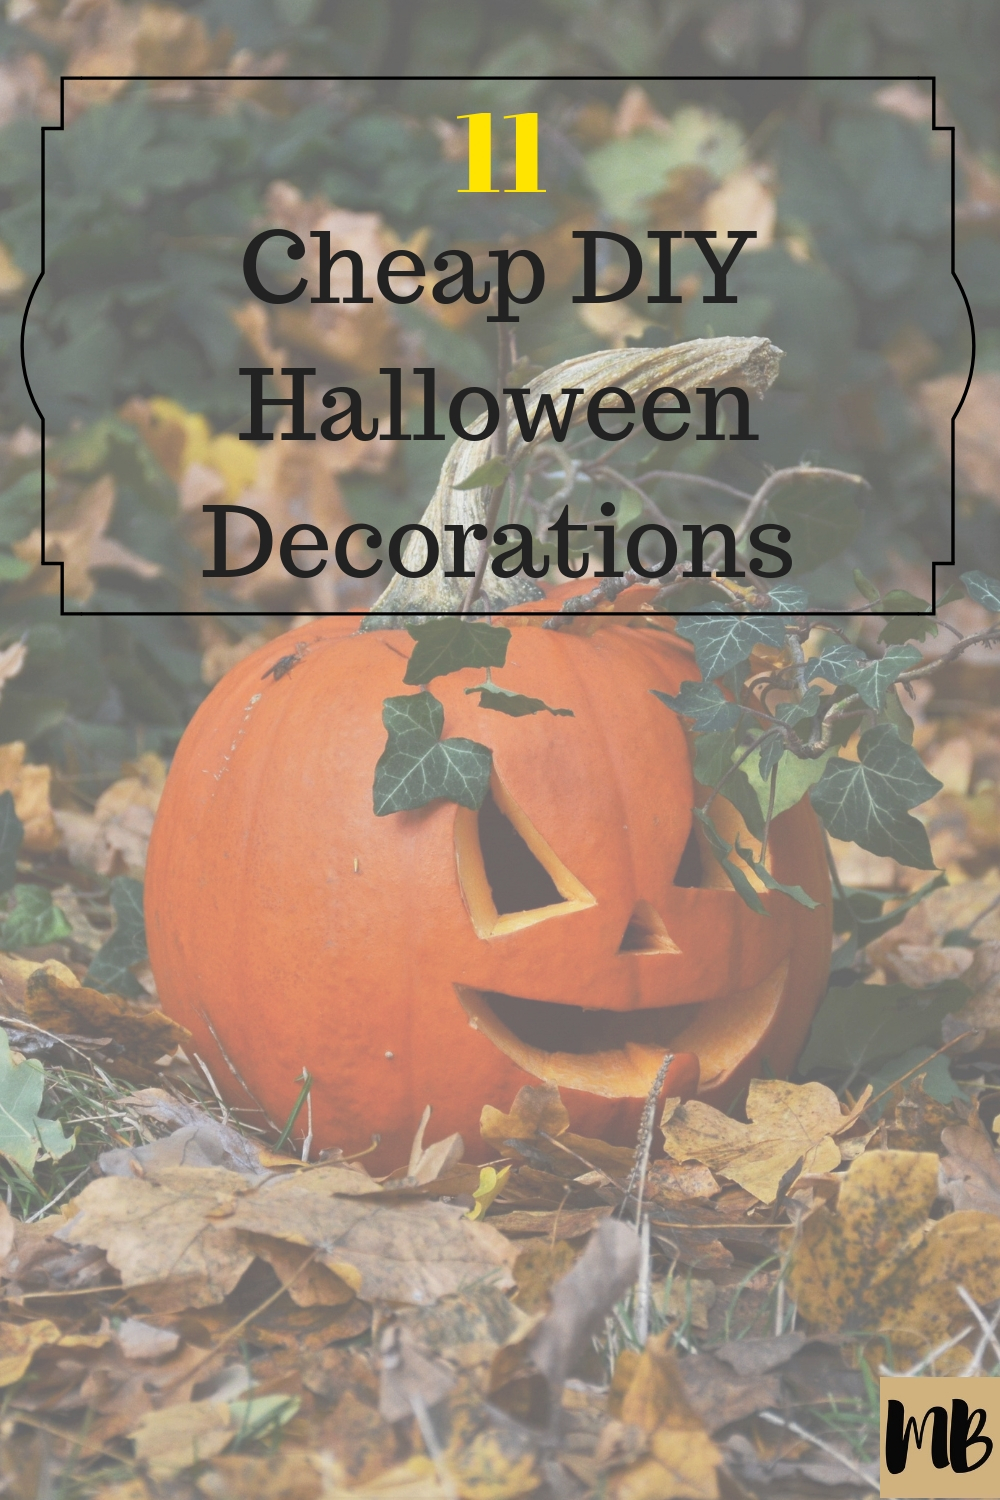 Cheap DIY Do it yourself Halloween Decorations